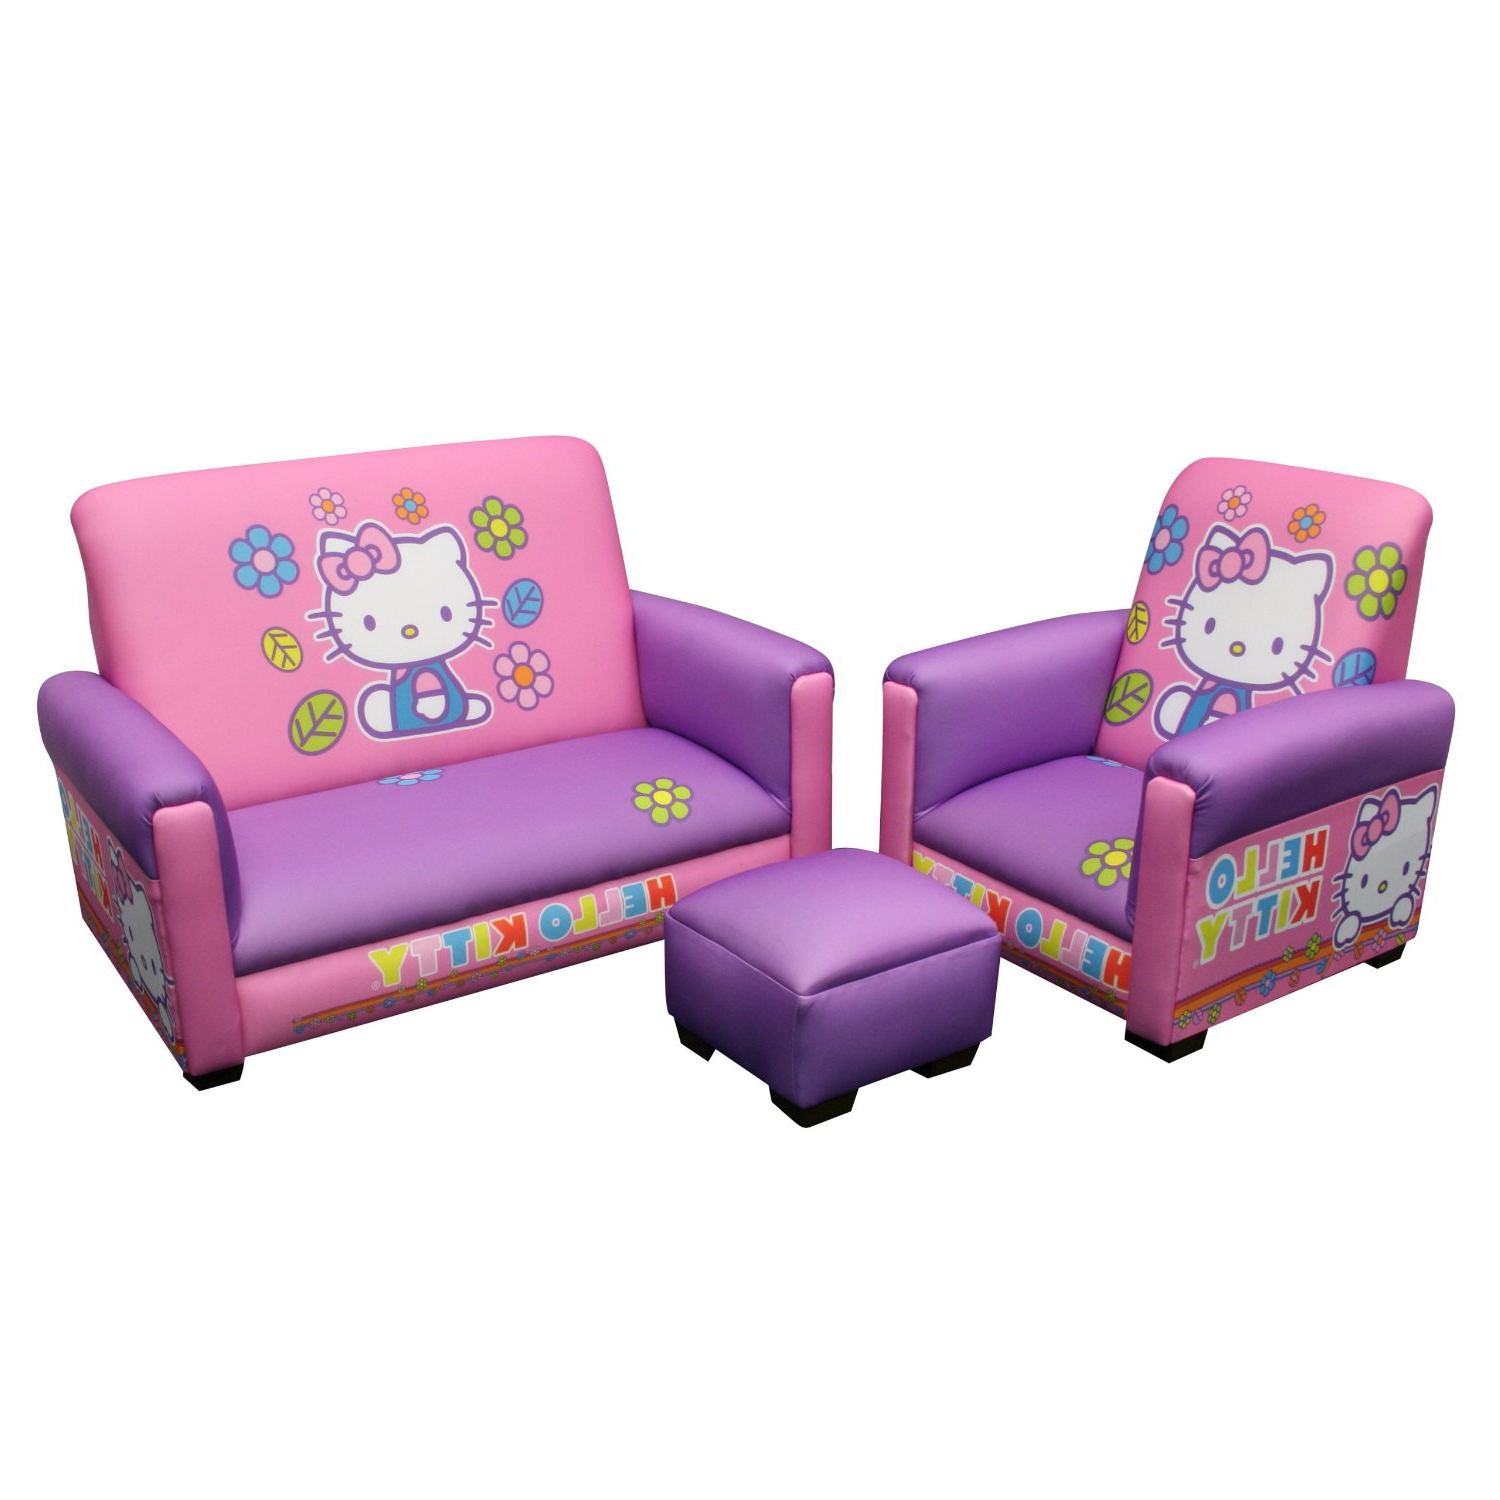 Decorating Where To Buy Kids Chairs Toddler Soft Furniture Toddler Regarding 2019 Toddler Sofa Chairs (View 4 of 20)